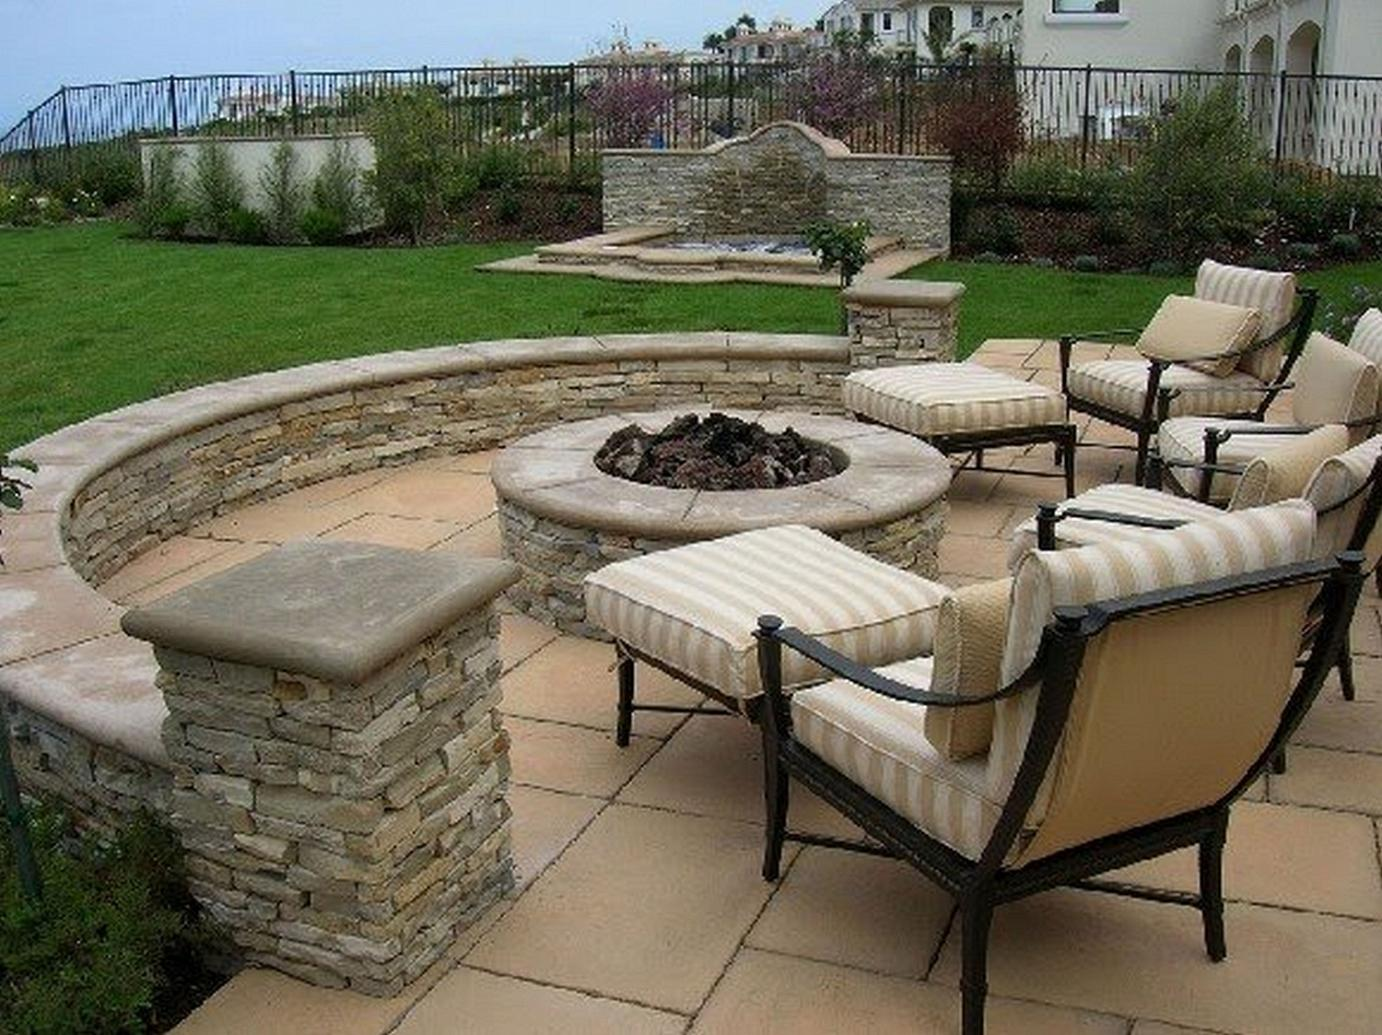 Backyard Patio Ideas On A Budget   Large And Beautiful Photos. Photo To  Select Backyard Patio Ideas On A Budget | Design Your Home